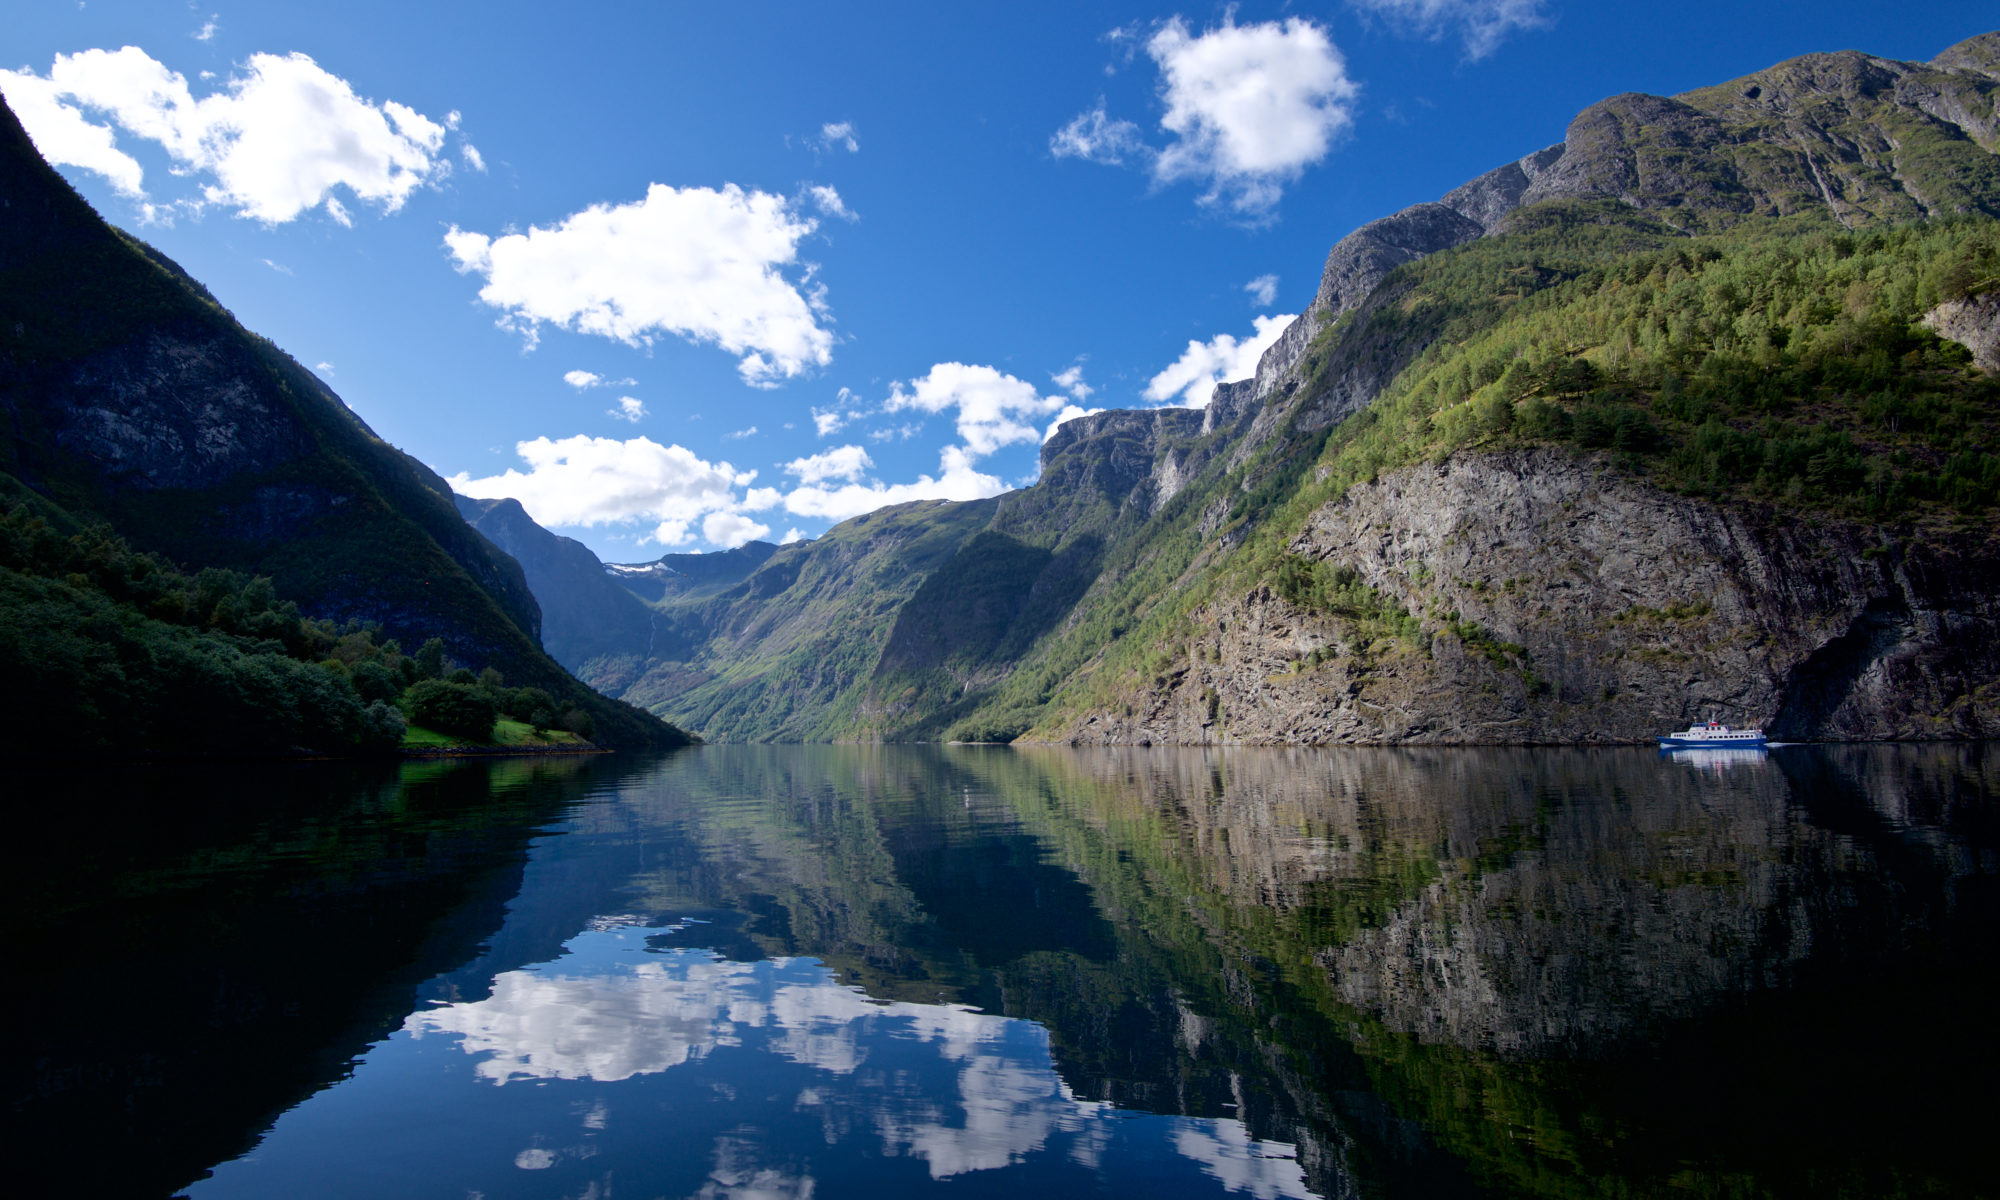 Download Mobile Phone Background Images from the Norwegian Fjords